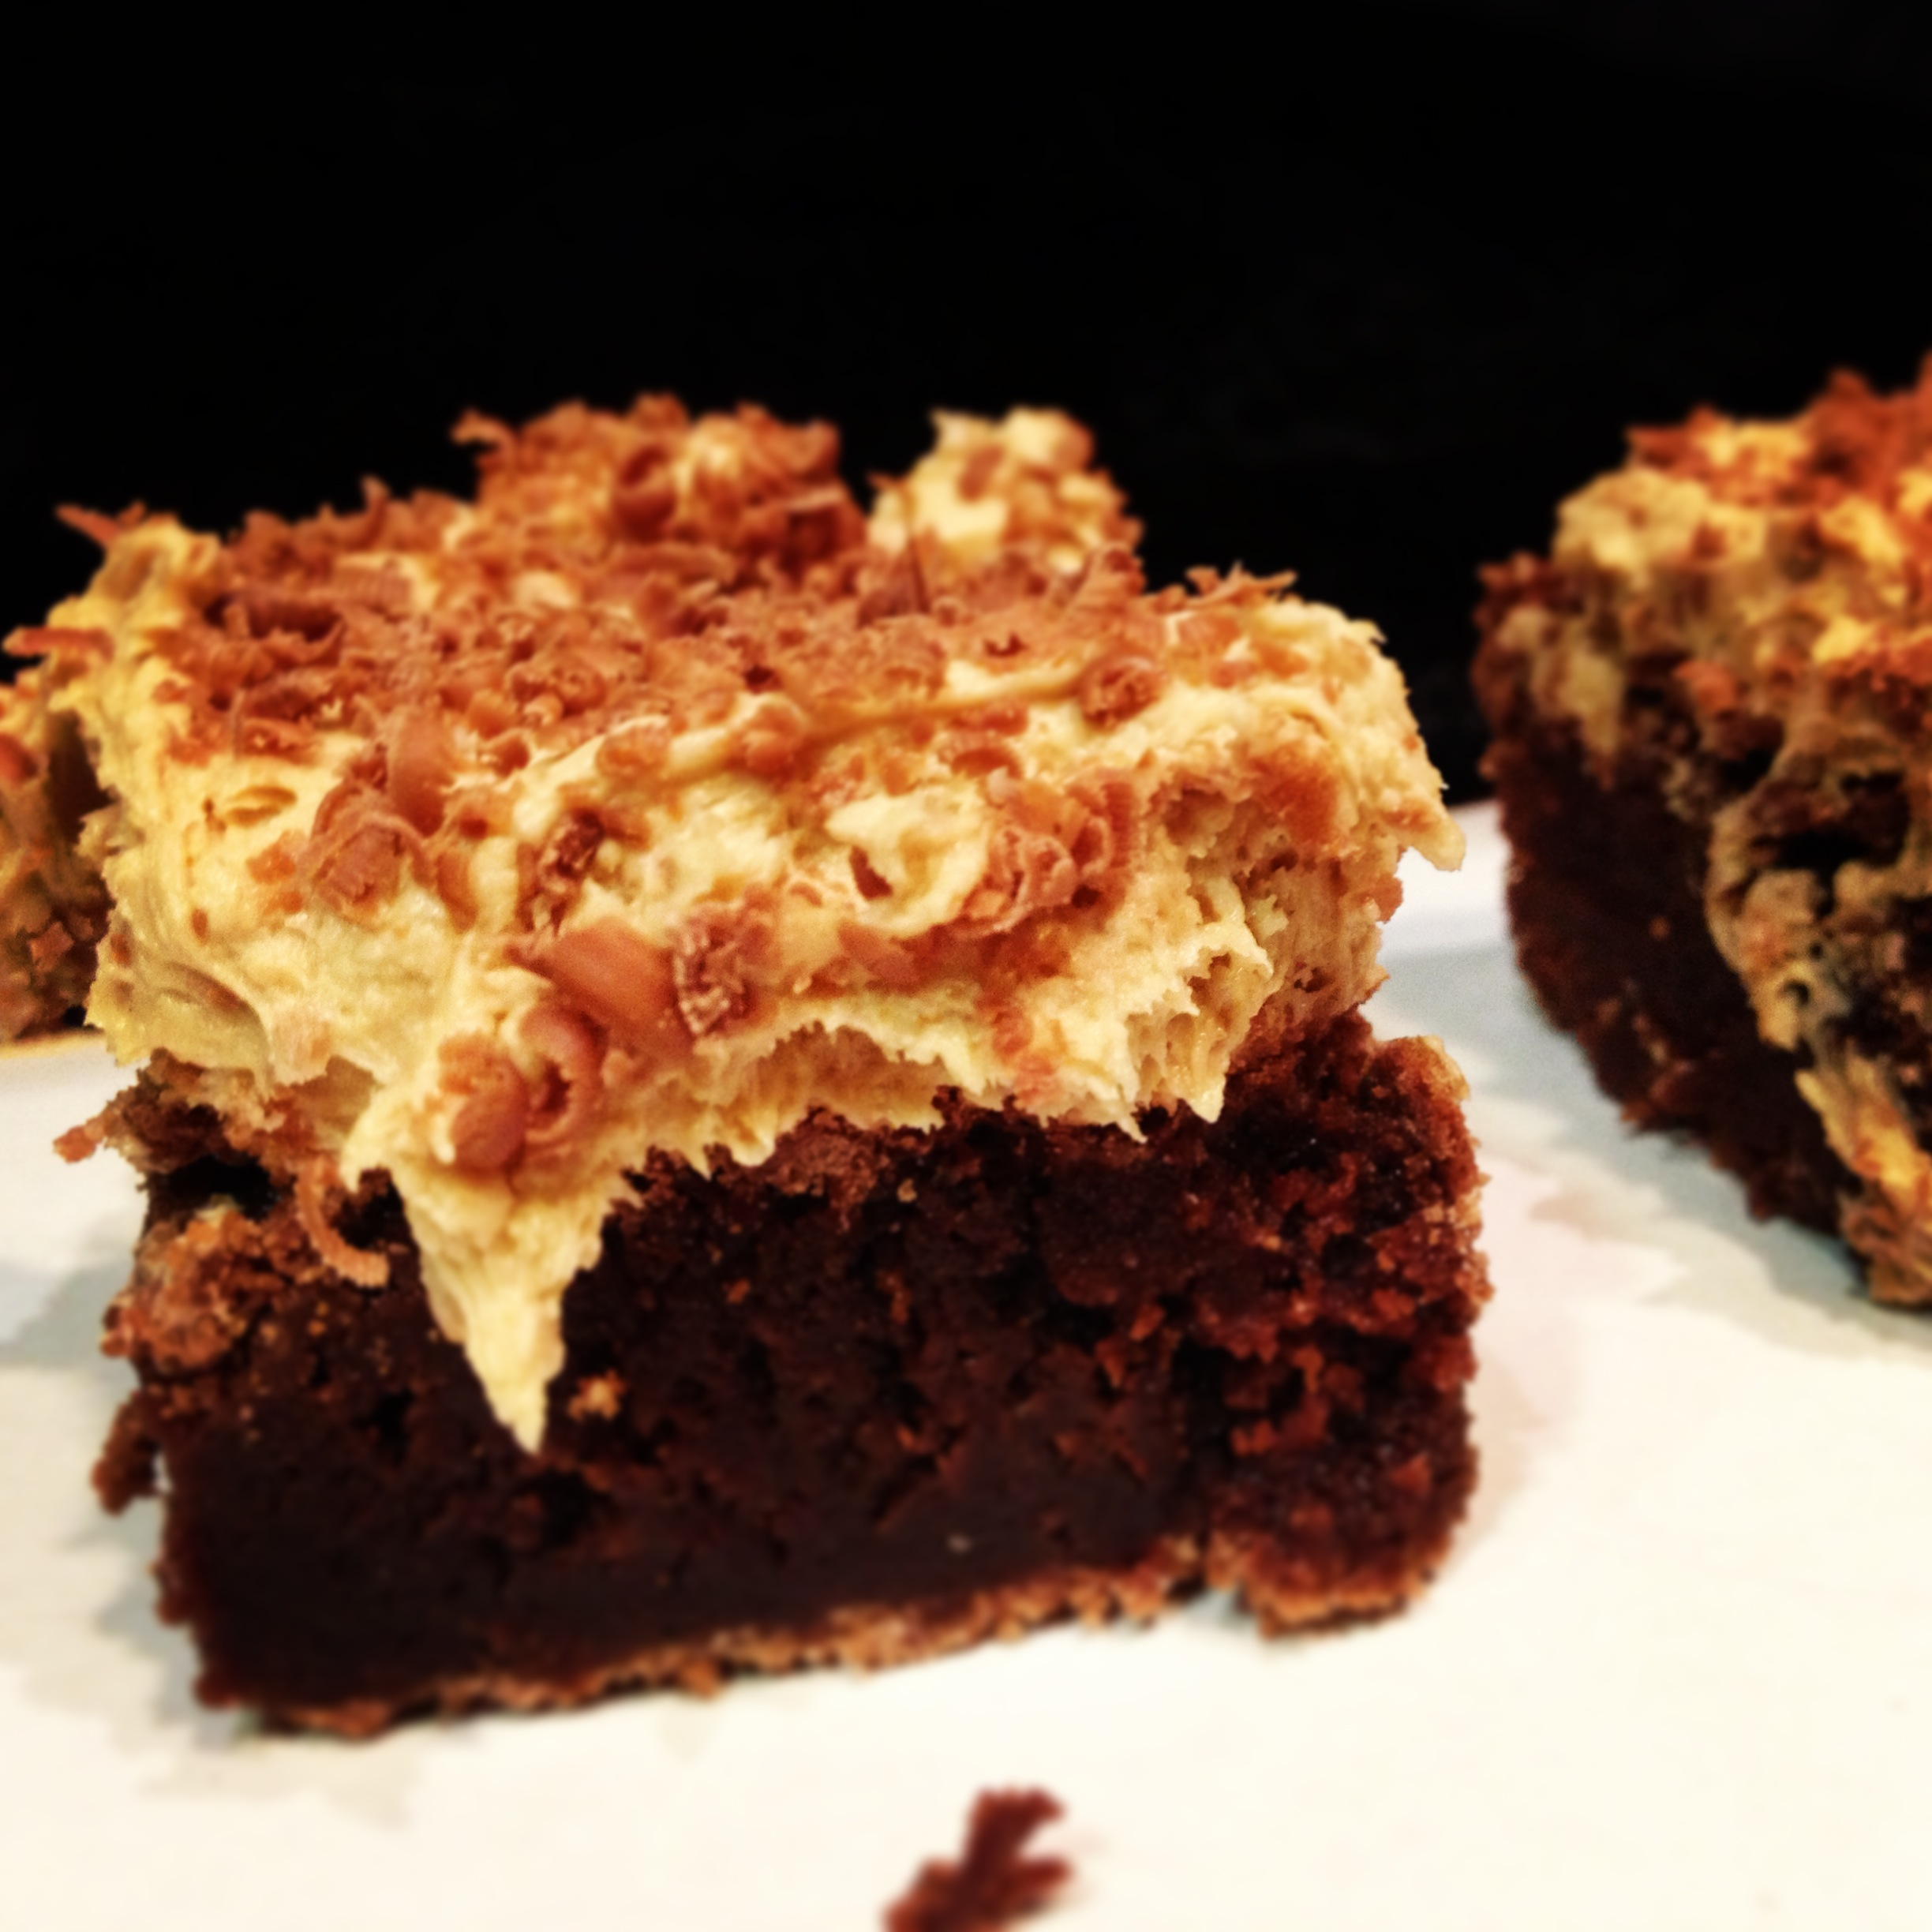 More brownie action!